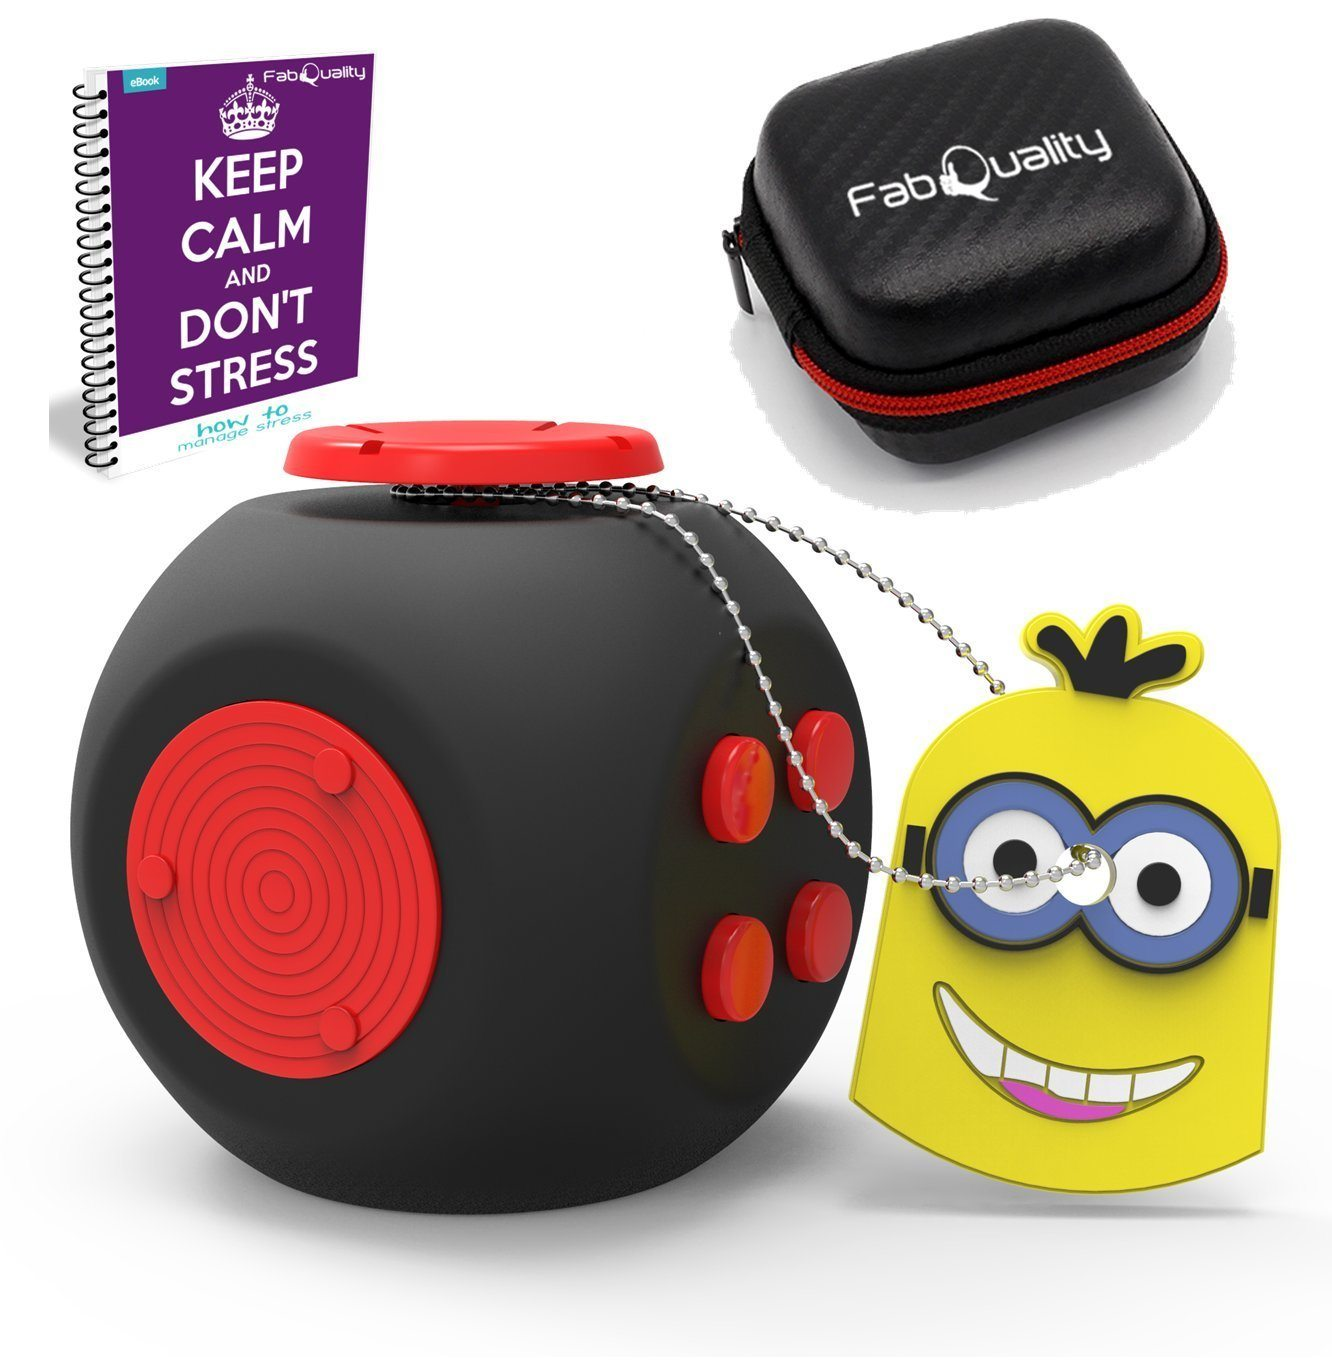 717WMQcNwHL. SL1362  - FabQuality Cube Anxiety Attention Toy With BONUS CASE + eBook Included + Minion Key Chain - Relieves Stress And Anxiety And Relax for Children and Adults BONUS EBOOK is sent by email